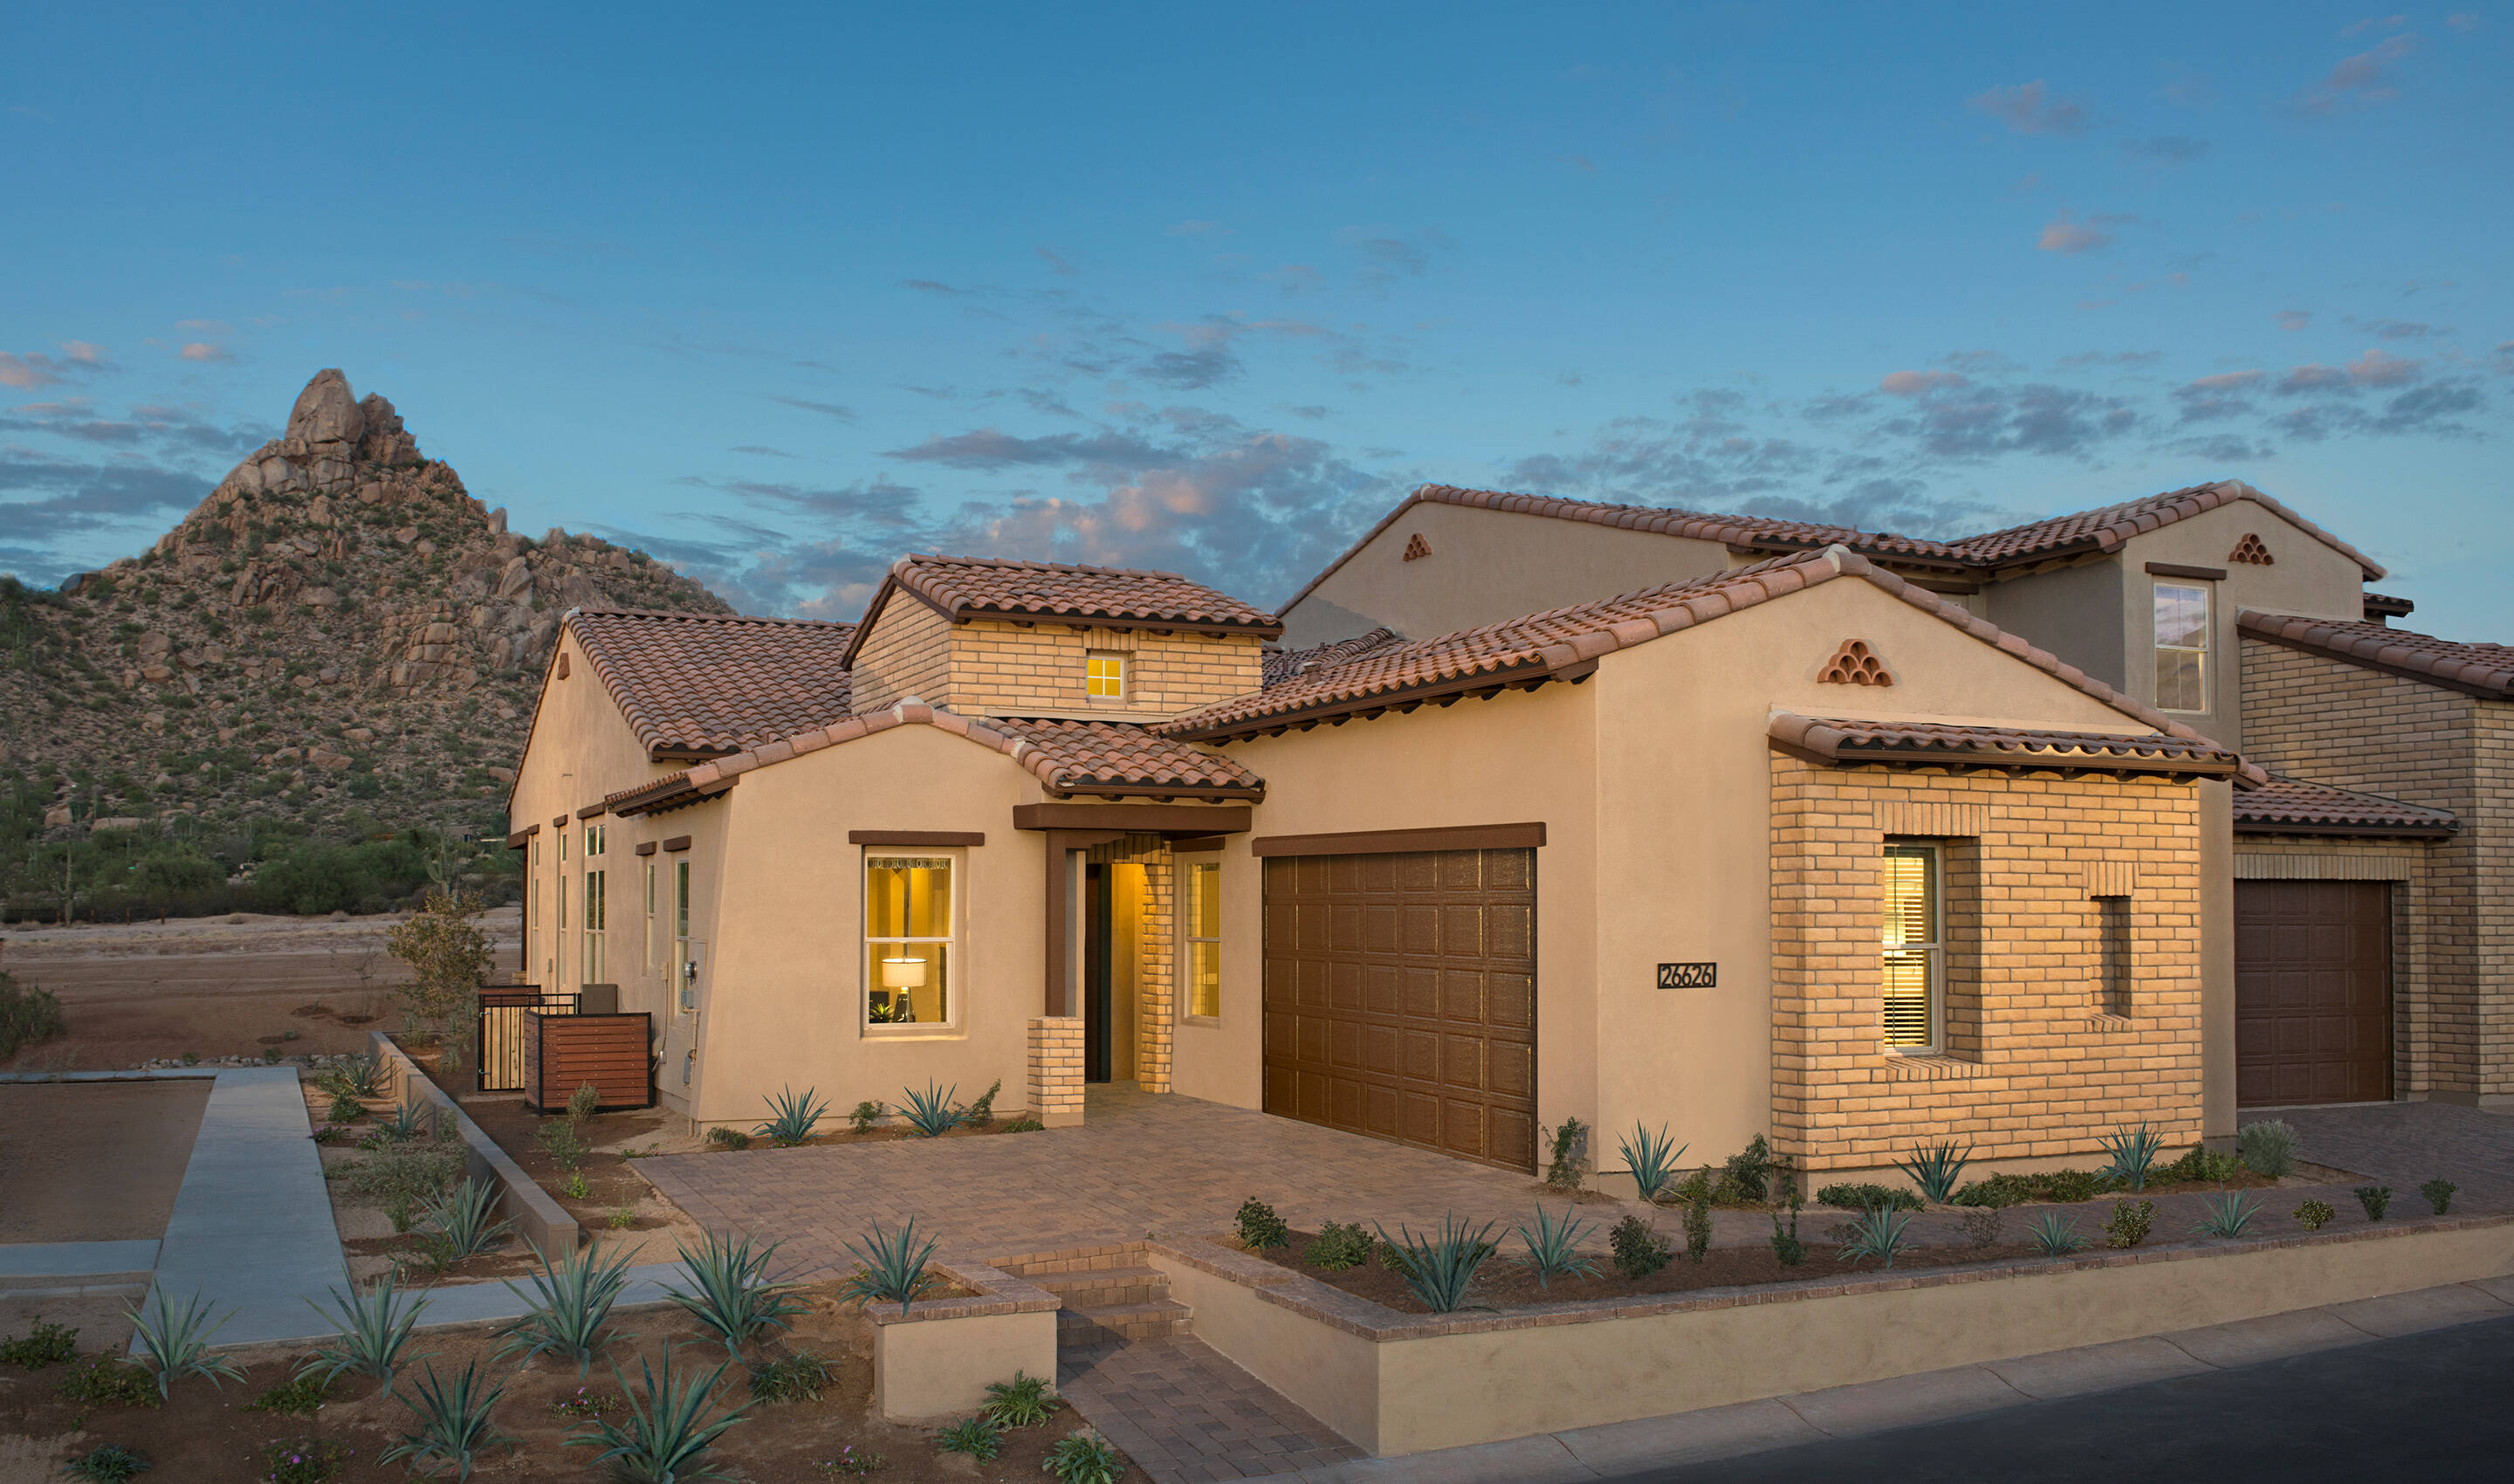 Here is the Brand-new Image Of Patio Homes for Sale Queen Creek Az